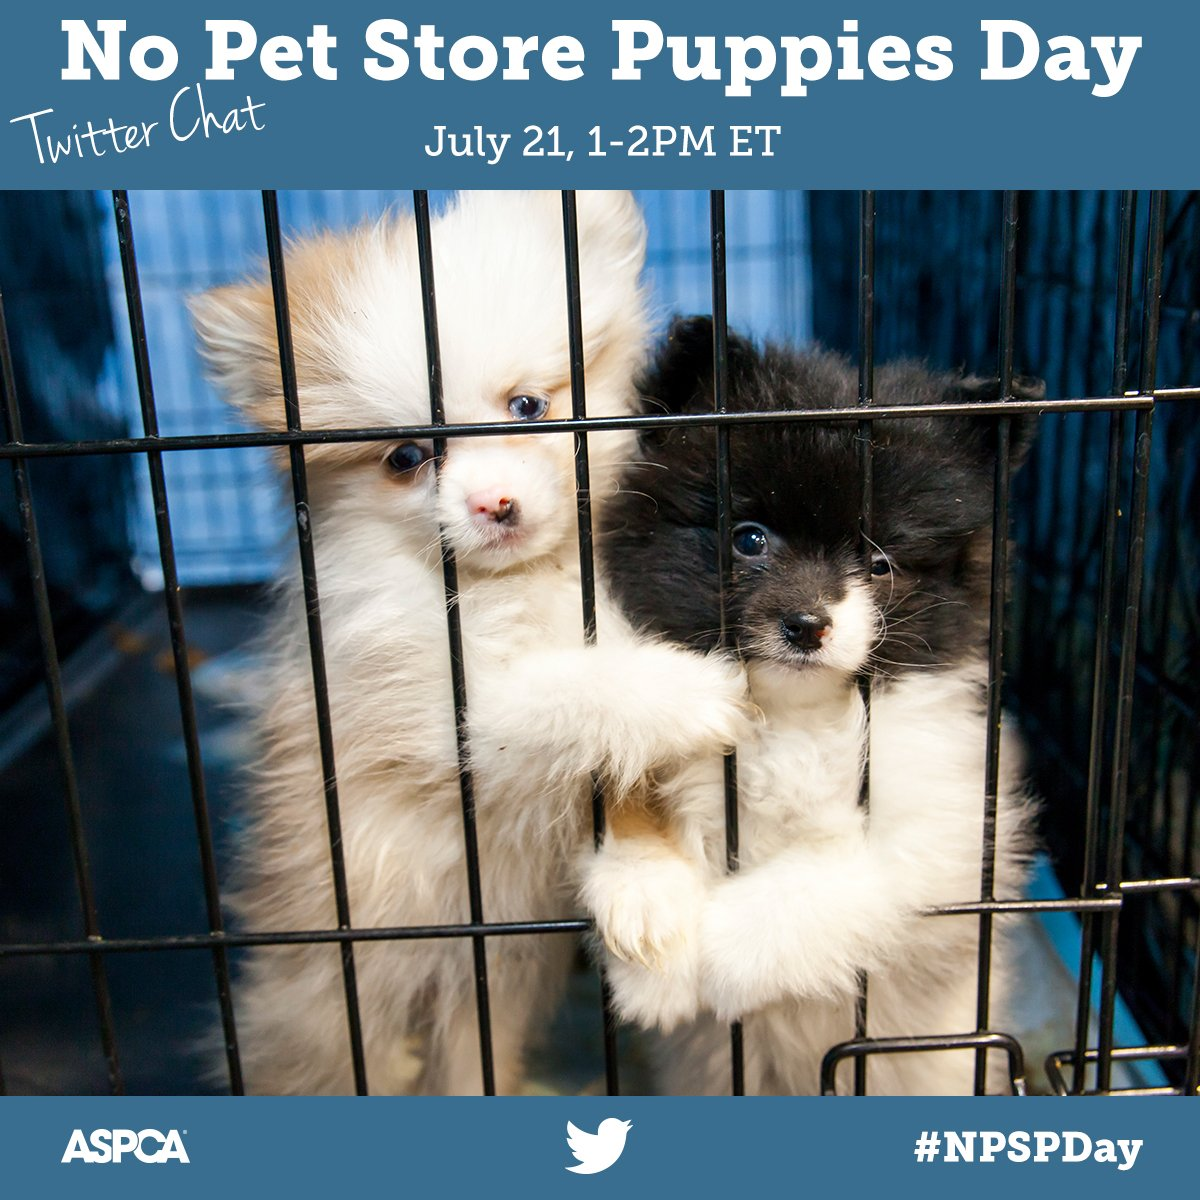 no pet store puppies day is july 21 rsvp now join us 7 21 from 1 2pm et for our no pet store